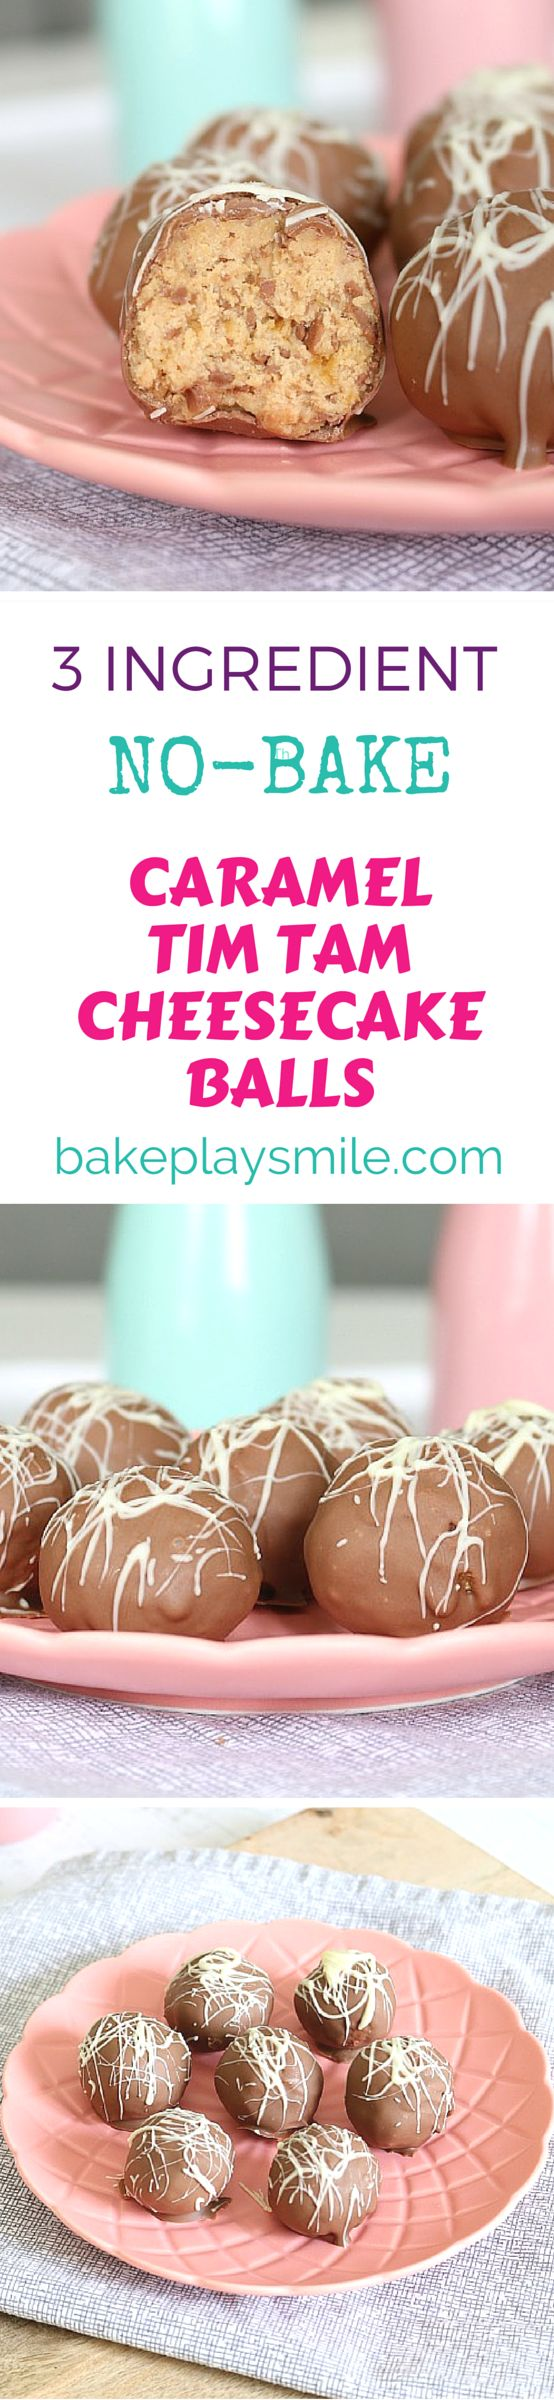 You can't get a better treat than this!!! These Caramel Tim Tam Cheesecake Balls are completely no-bake, take only 5 minutes to make and you only need 3 ingredients! So simple!!! #cheesecake #balls #truffles #chocolate #caramel #timtams #recipe #thermomix #conventional